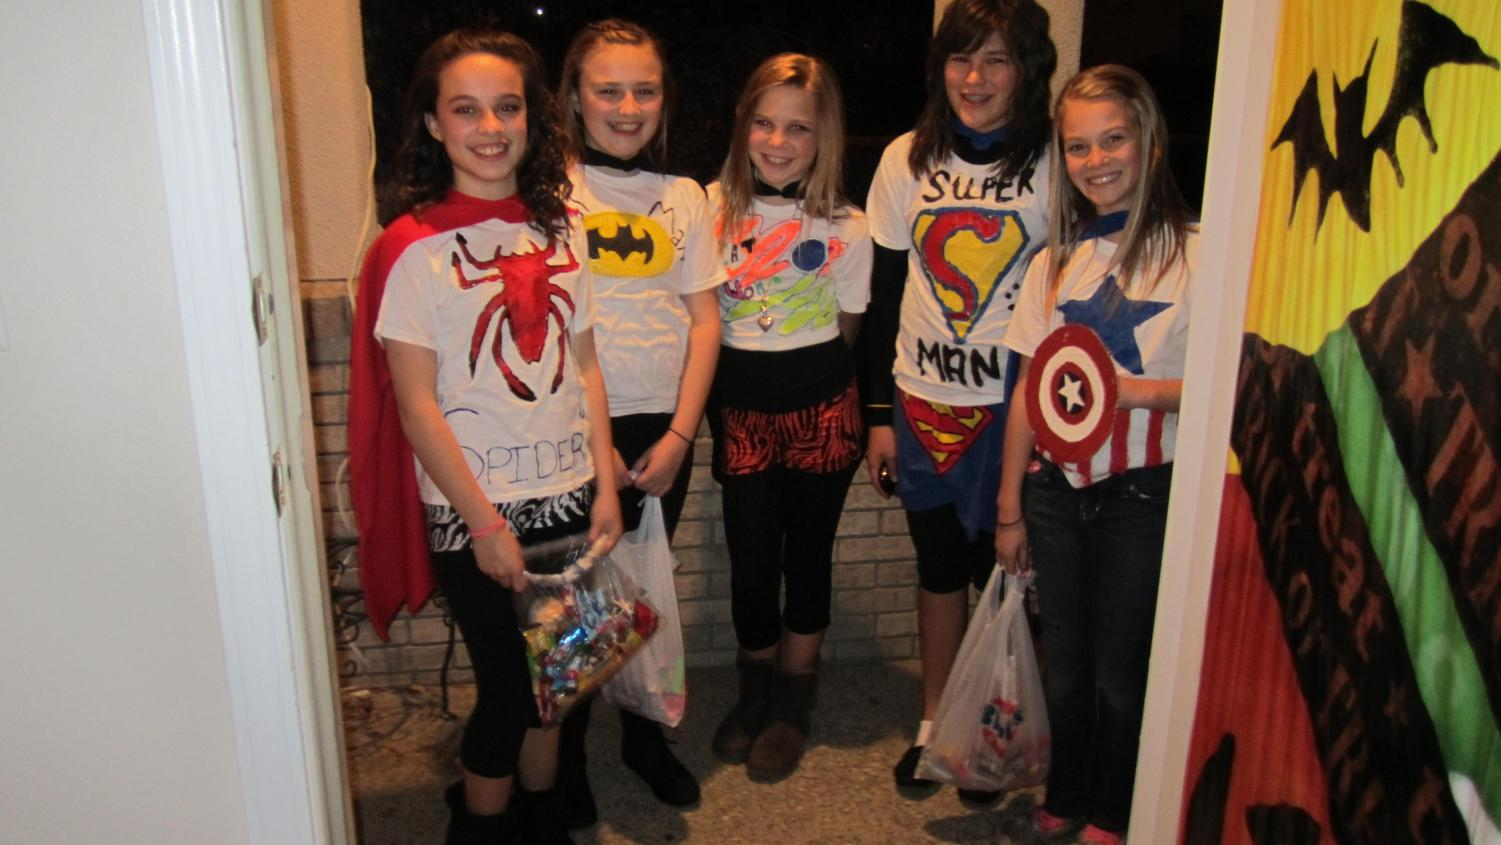 Powell Middle School students (from left) Karlie McKenzie, Katie McKenzie, Addy Howard, Jasmyne Lensegrav and Aubrey Stenerson take a brief picture break in between houses (circa. 2012)